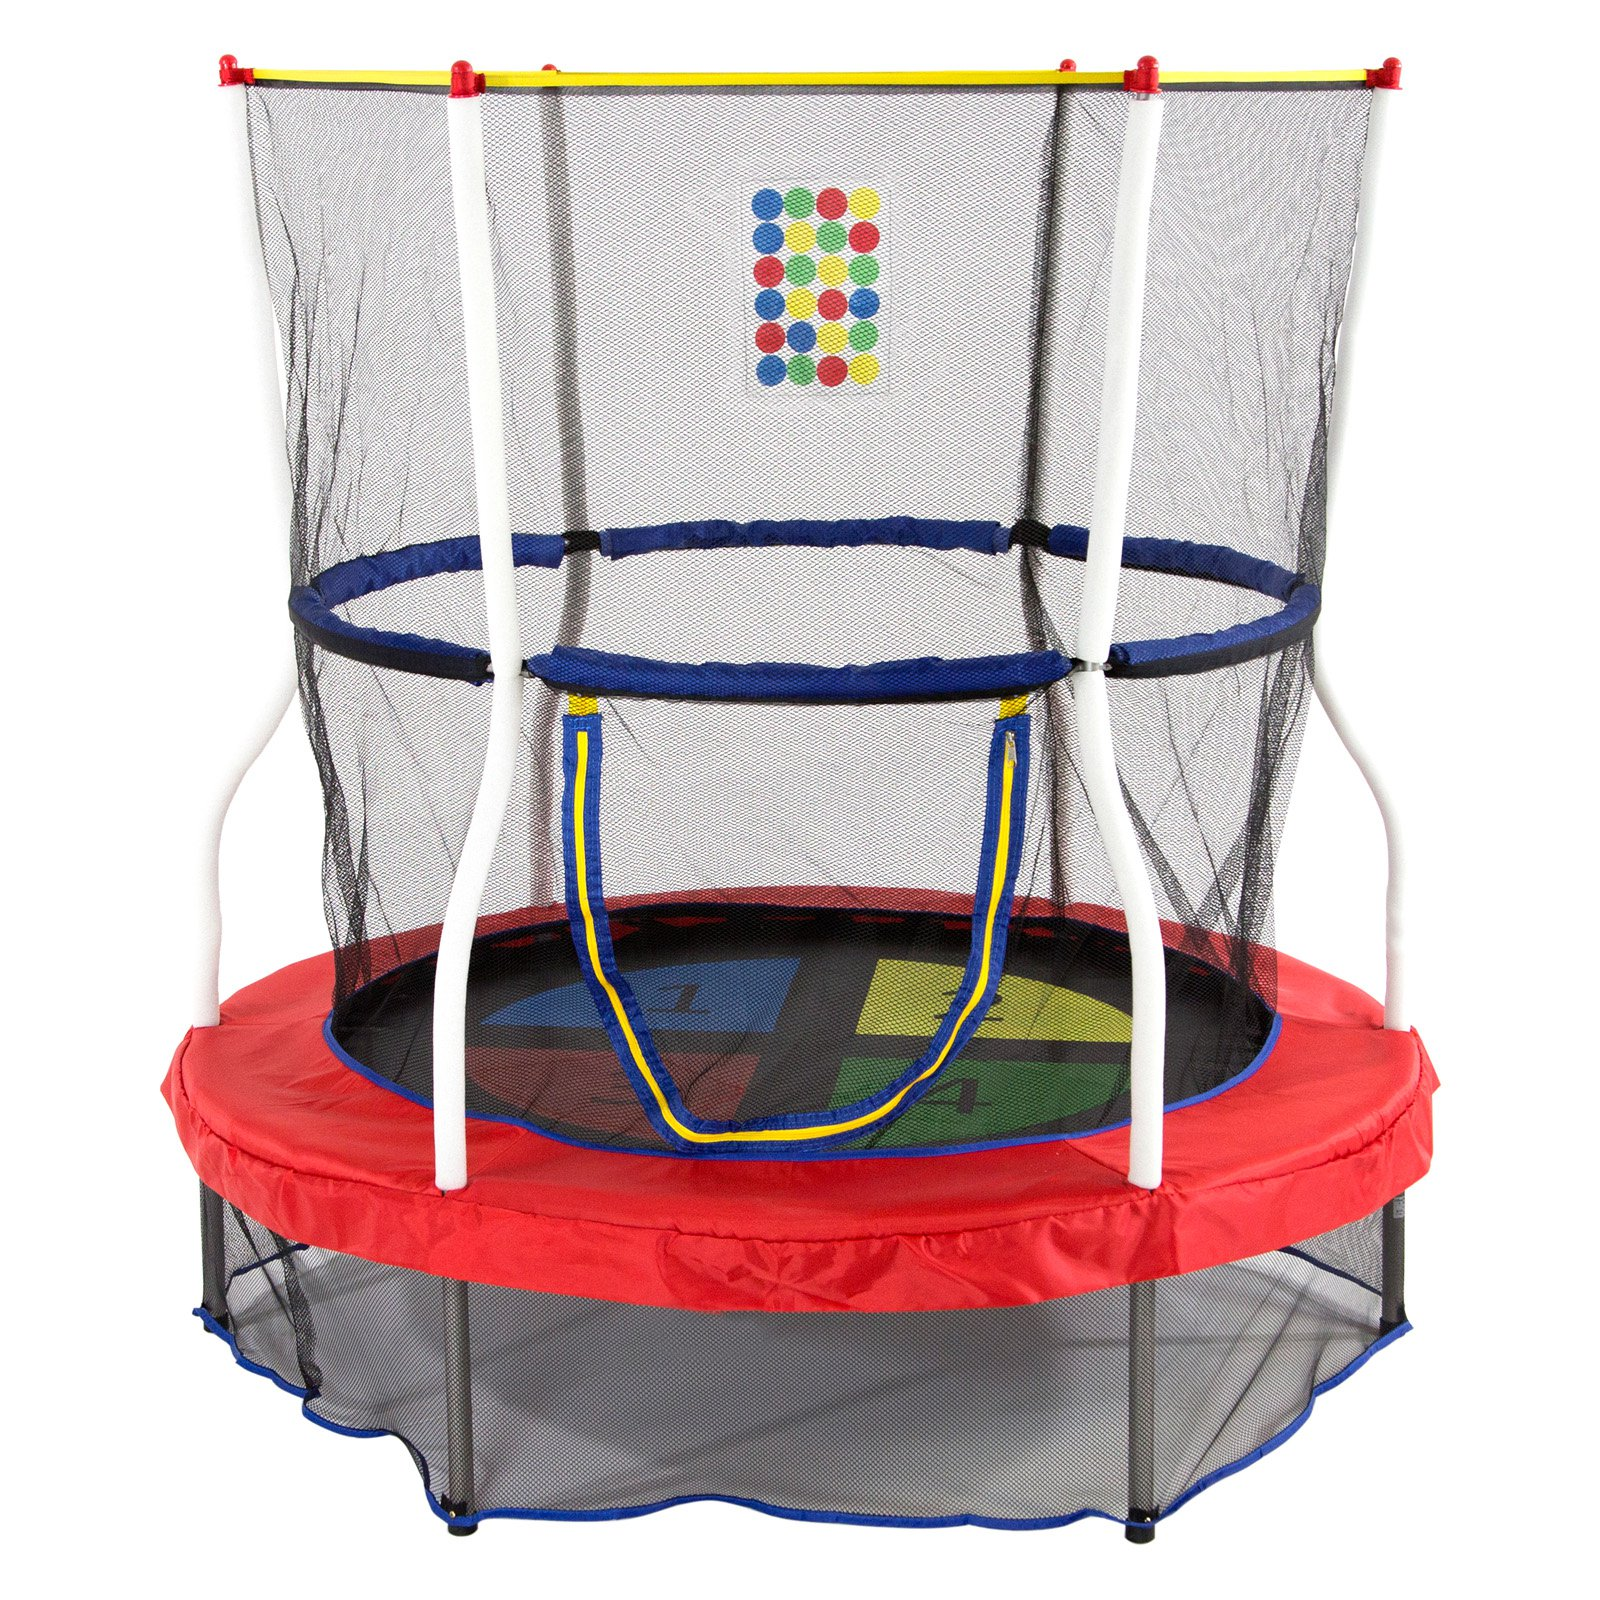 Skywalker 4.5 ft. Round Color and Counting Bouncer with Safety Enclosure